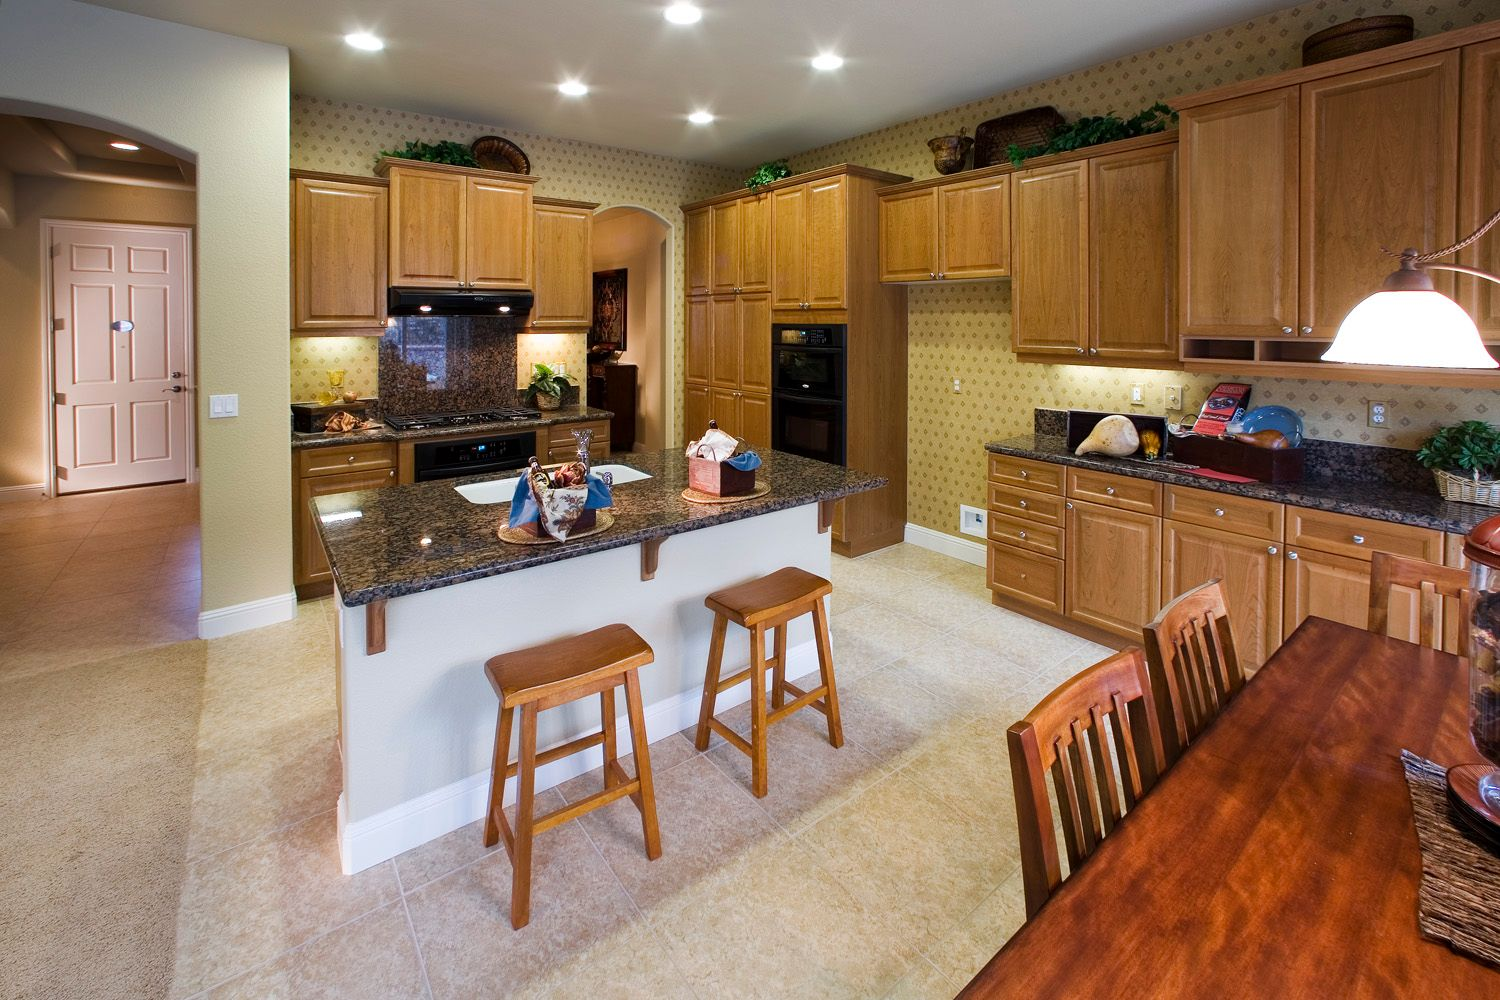 Kitchen Cabinets For Sale Near Folsom